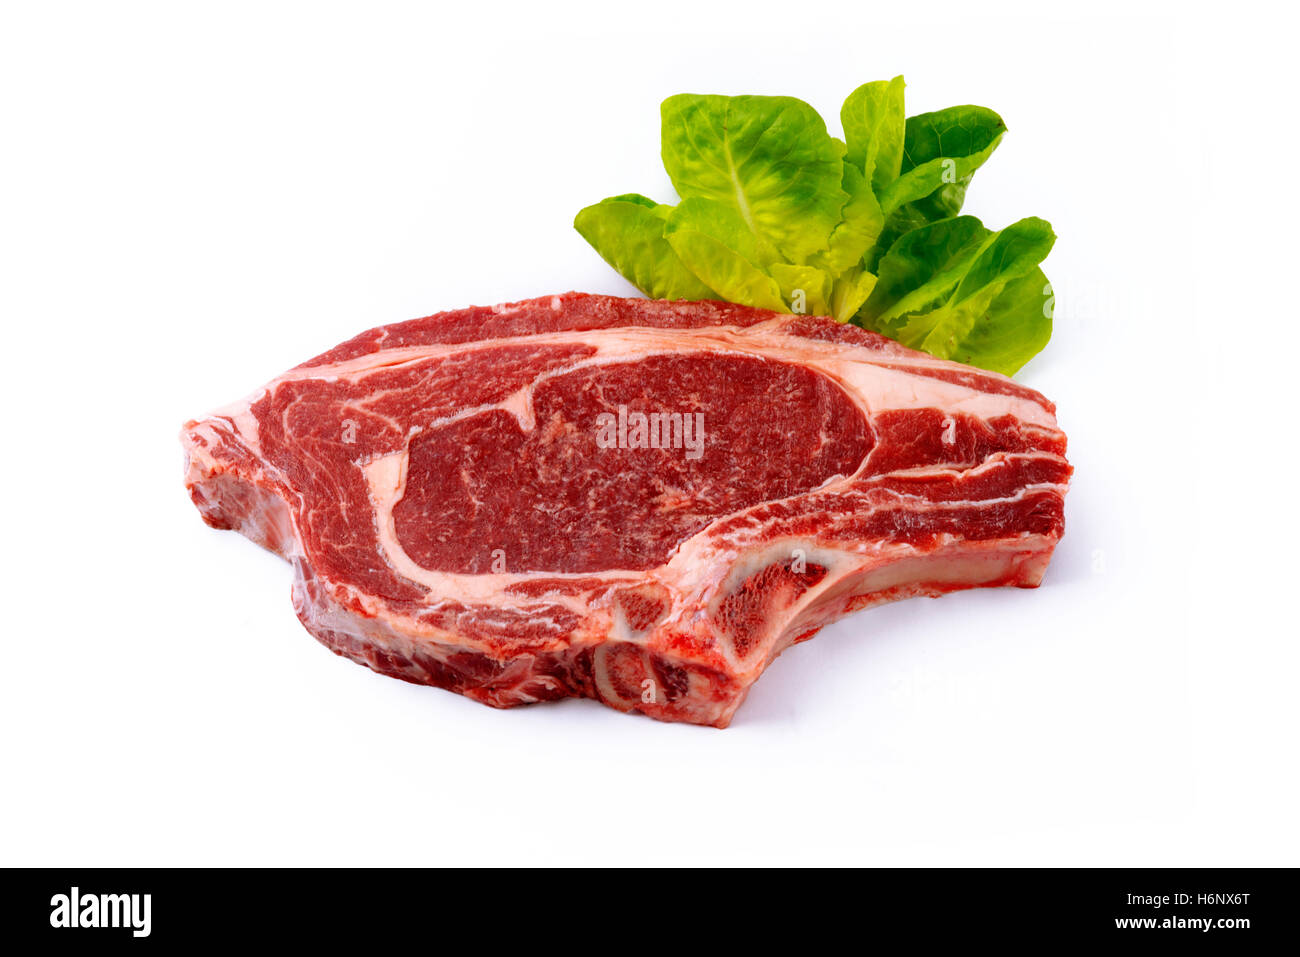 succulent organic tender steak with lettuce isolated on a bright white background with room for text and copy space - Stock Image